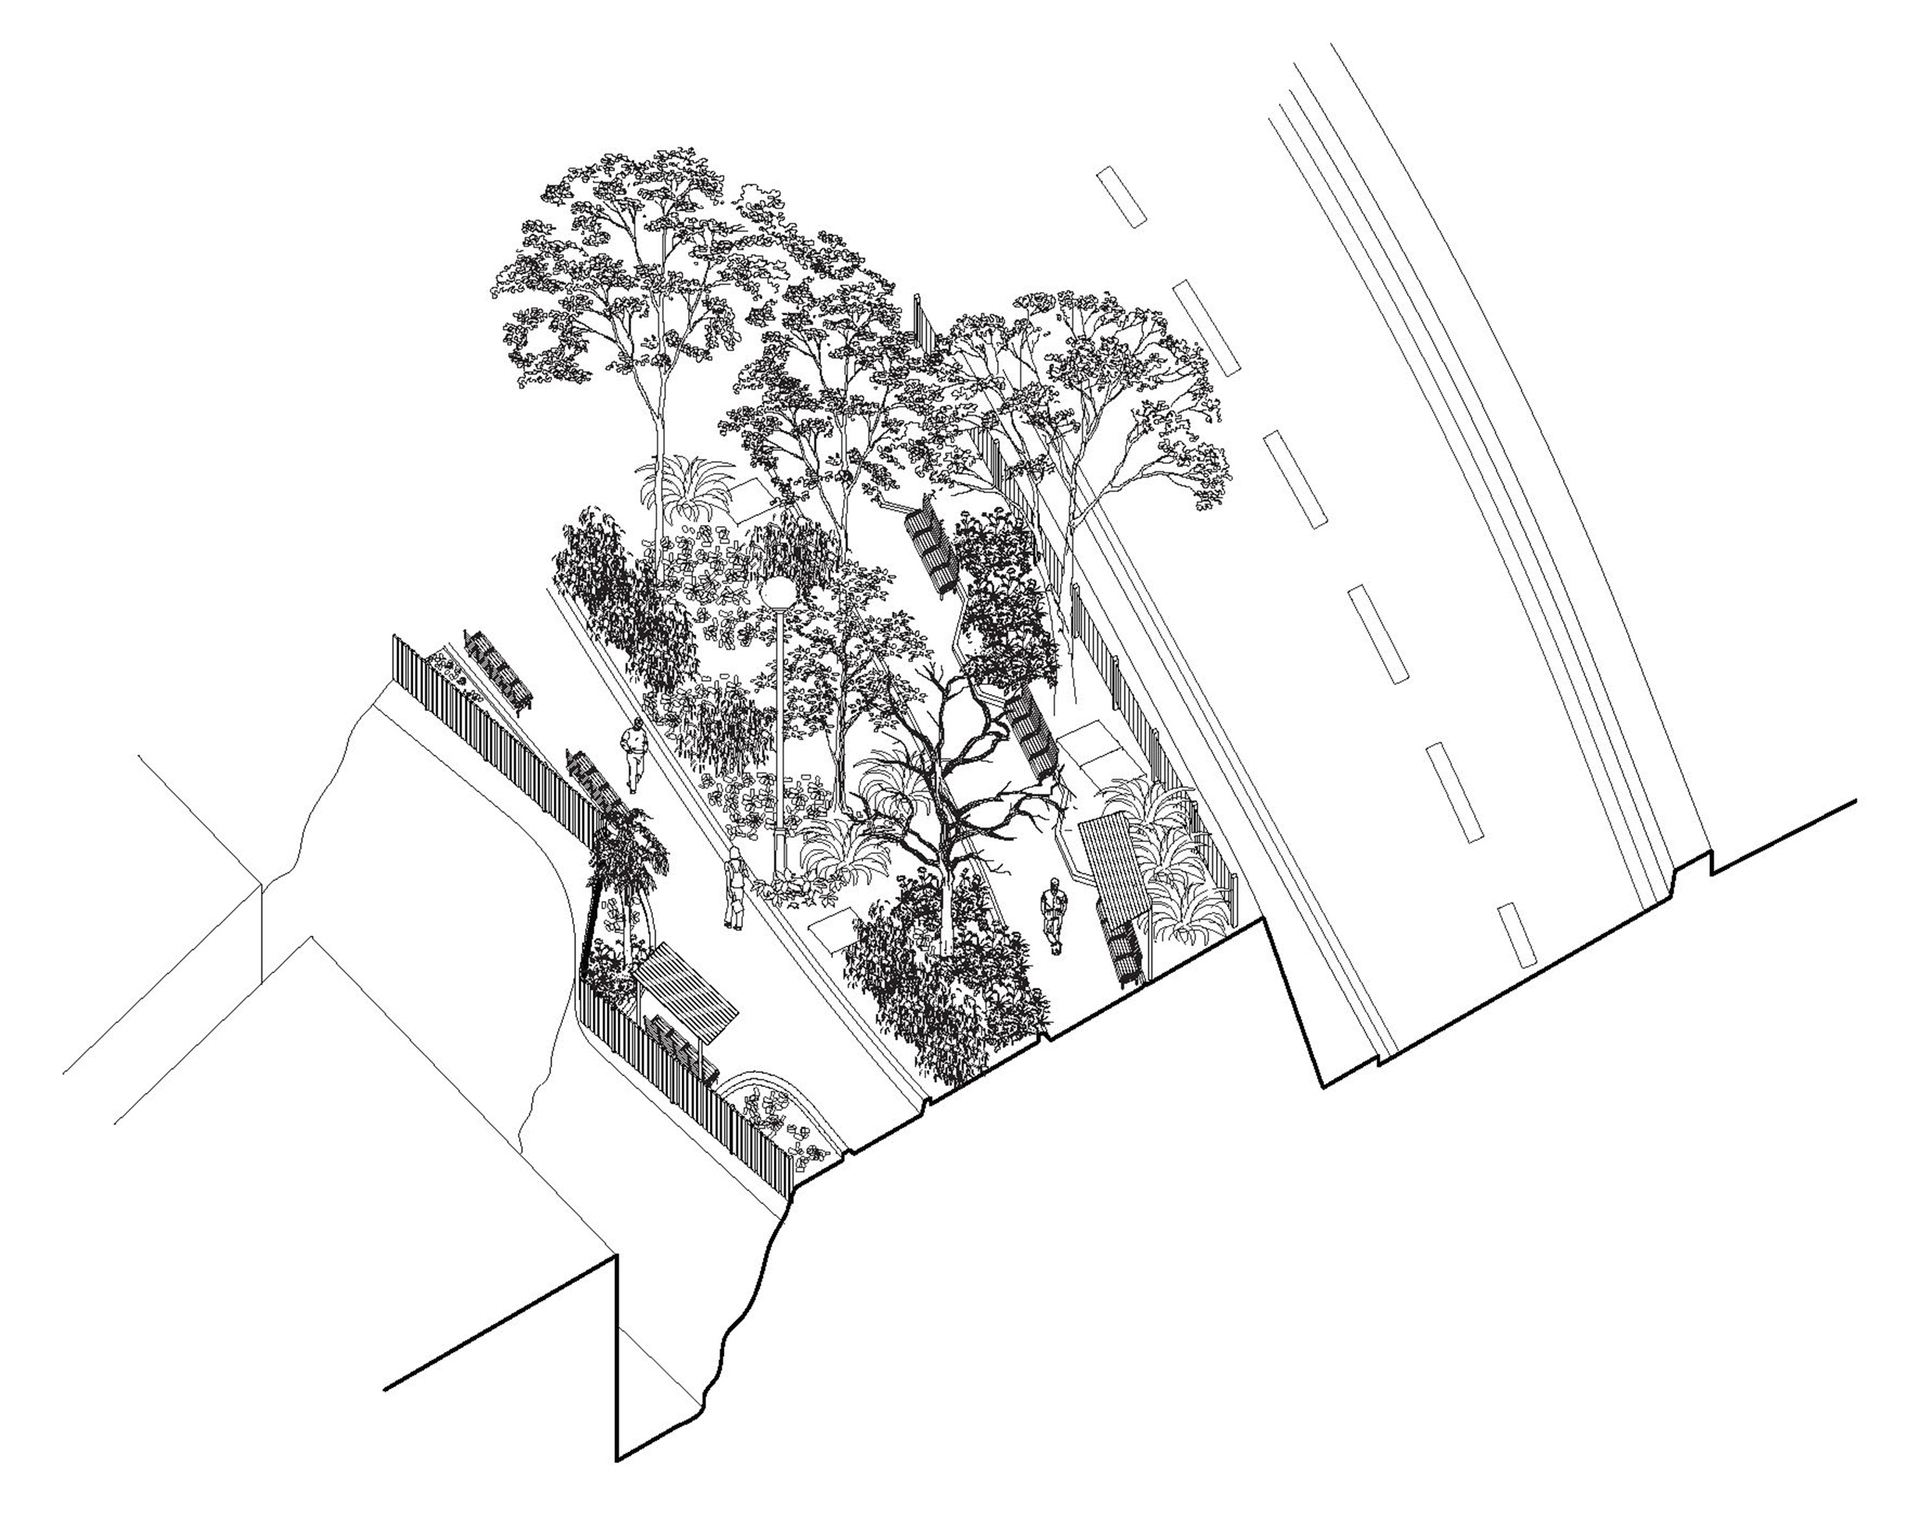 Enlarge Photo: Project 1 - (Inter)positioning: Yan Fung Street Rest Garden Spatial assembly axon. By CHEUNG Wing Ka Jasmine.